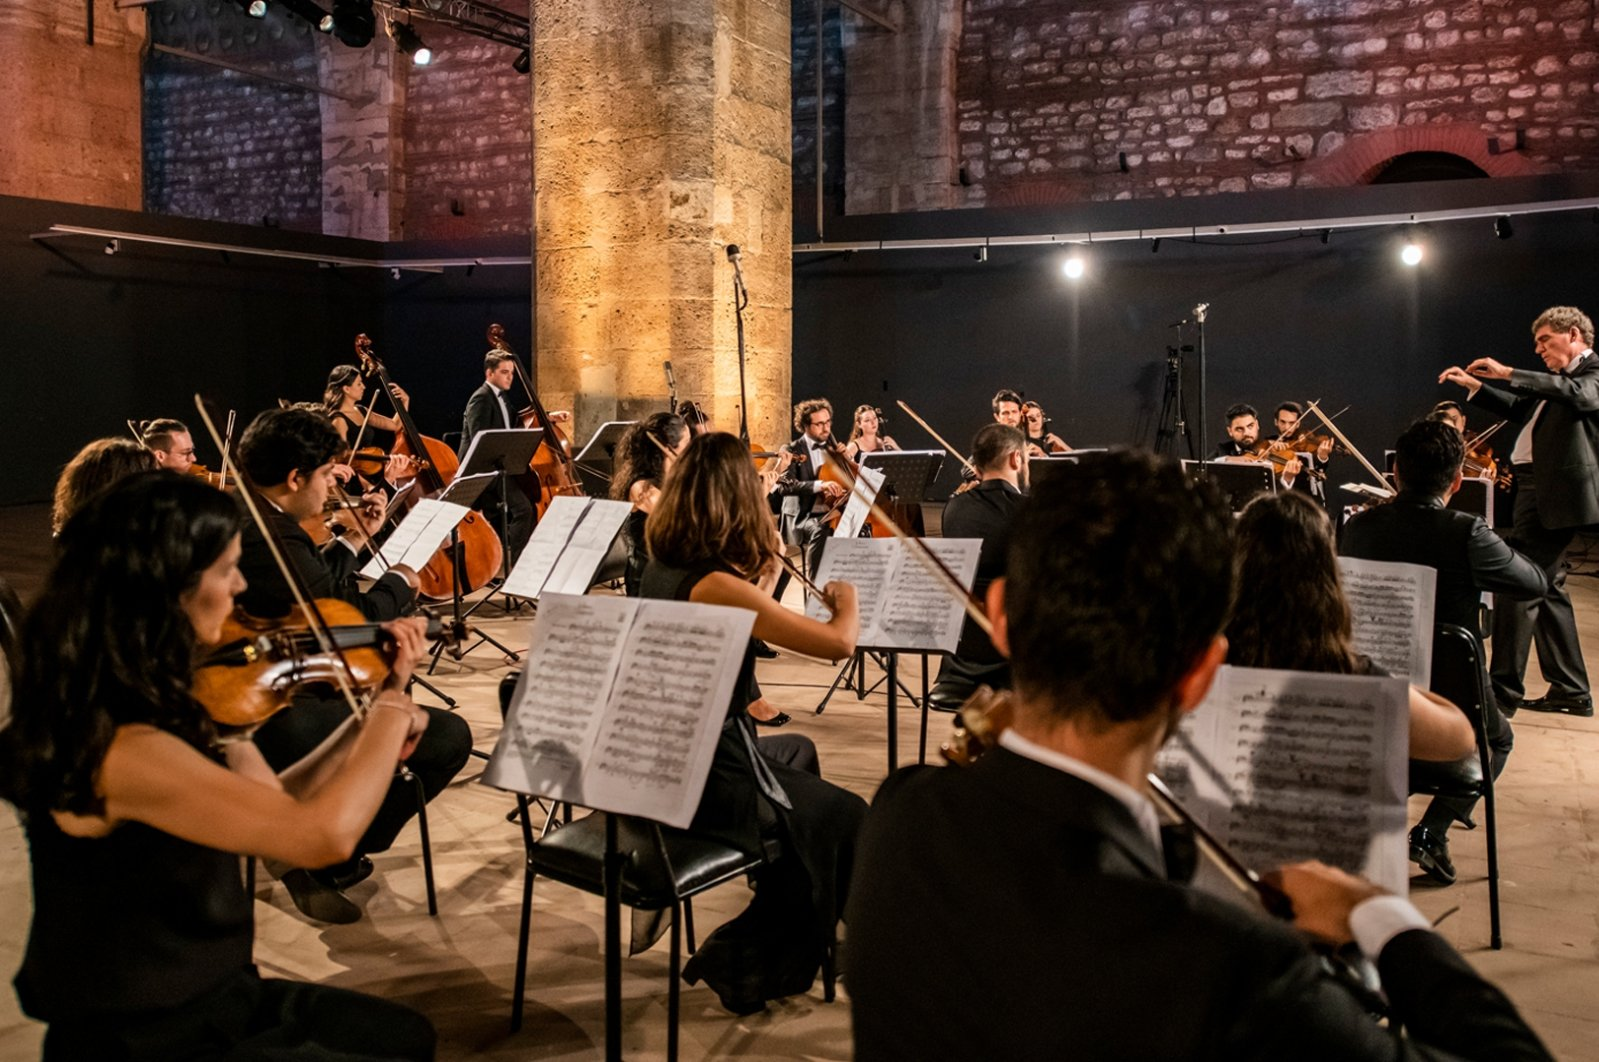 The Festival Orchestra under the direction of Can Okan will accompany pianist İdil Biret at Harbiye Cemil Topuzlu Open Air Theater on Aug. 24. (Courtesy of IKSV)